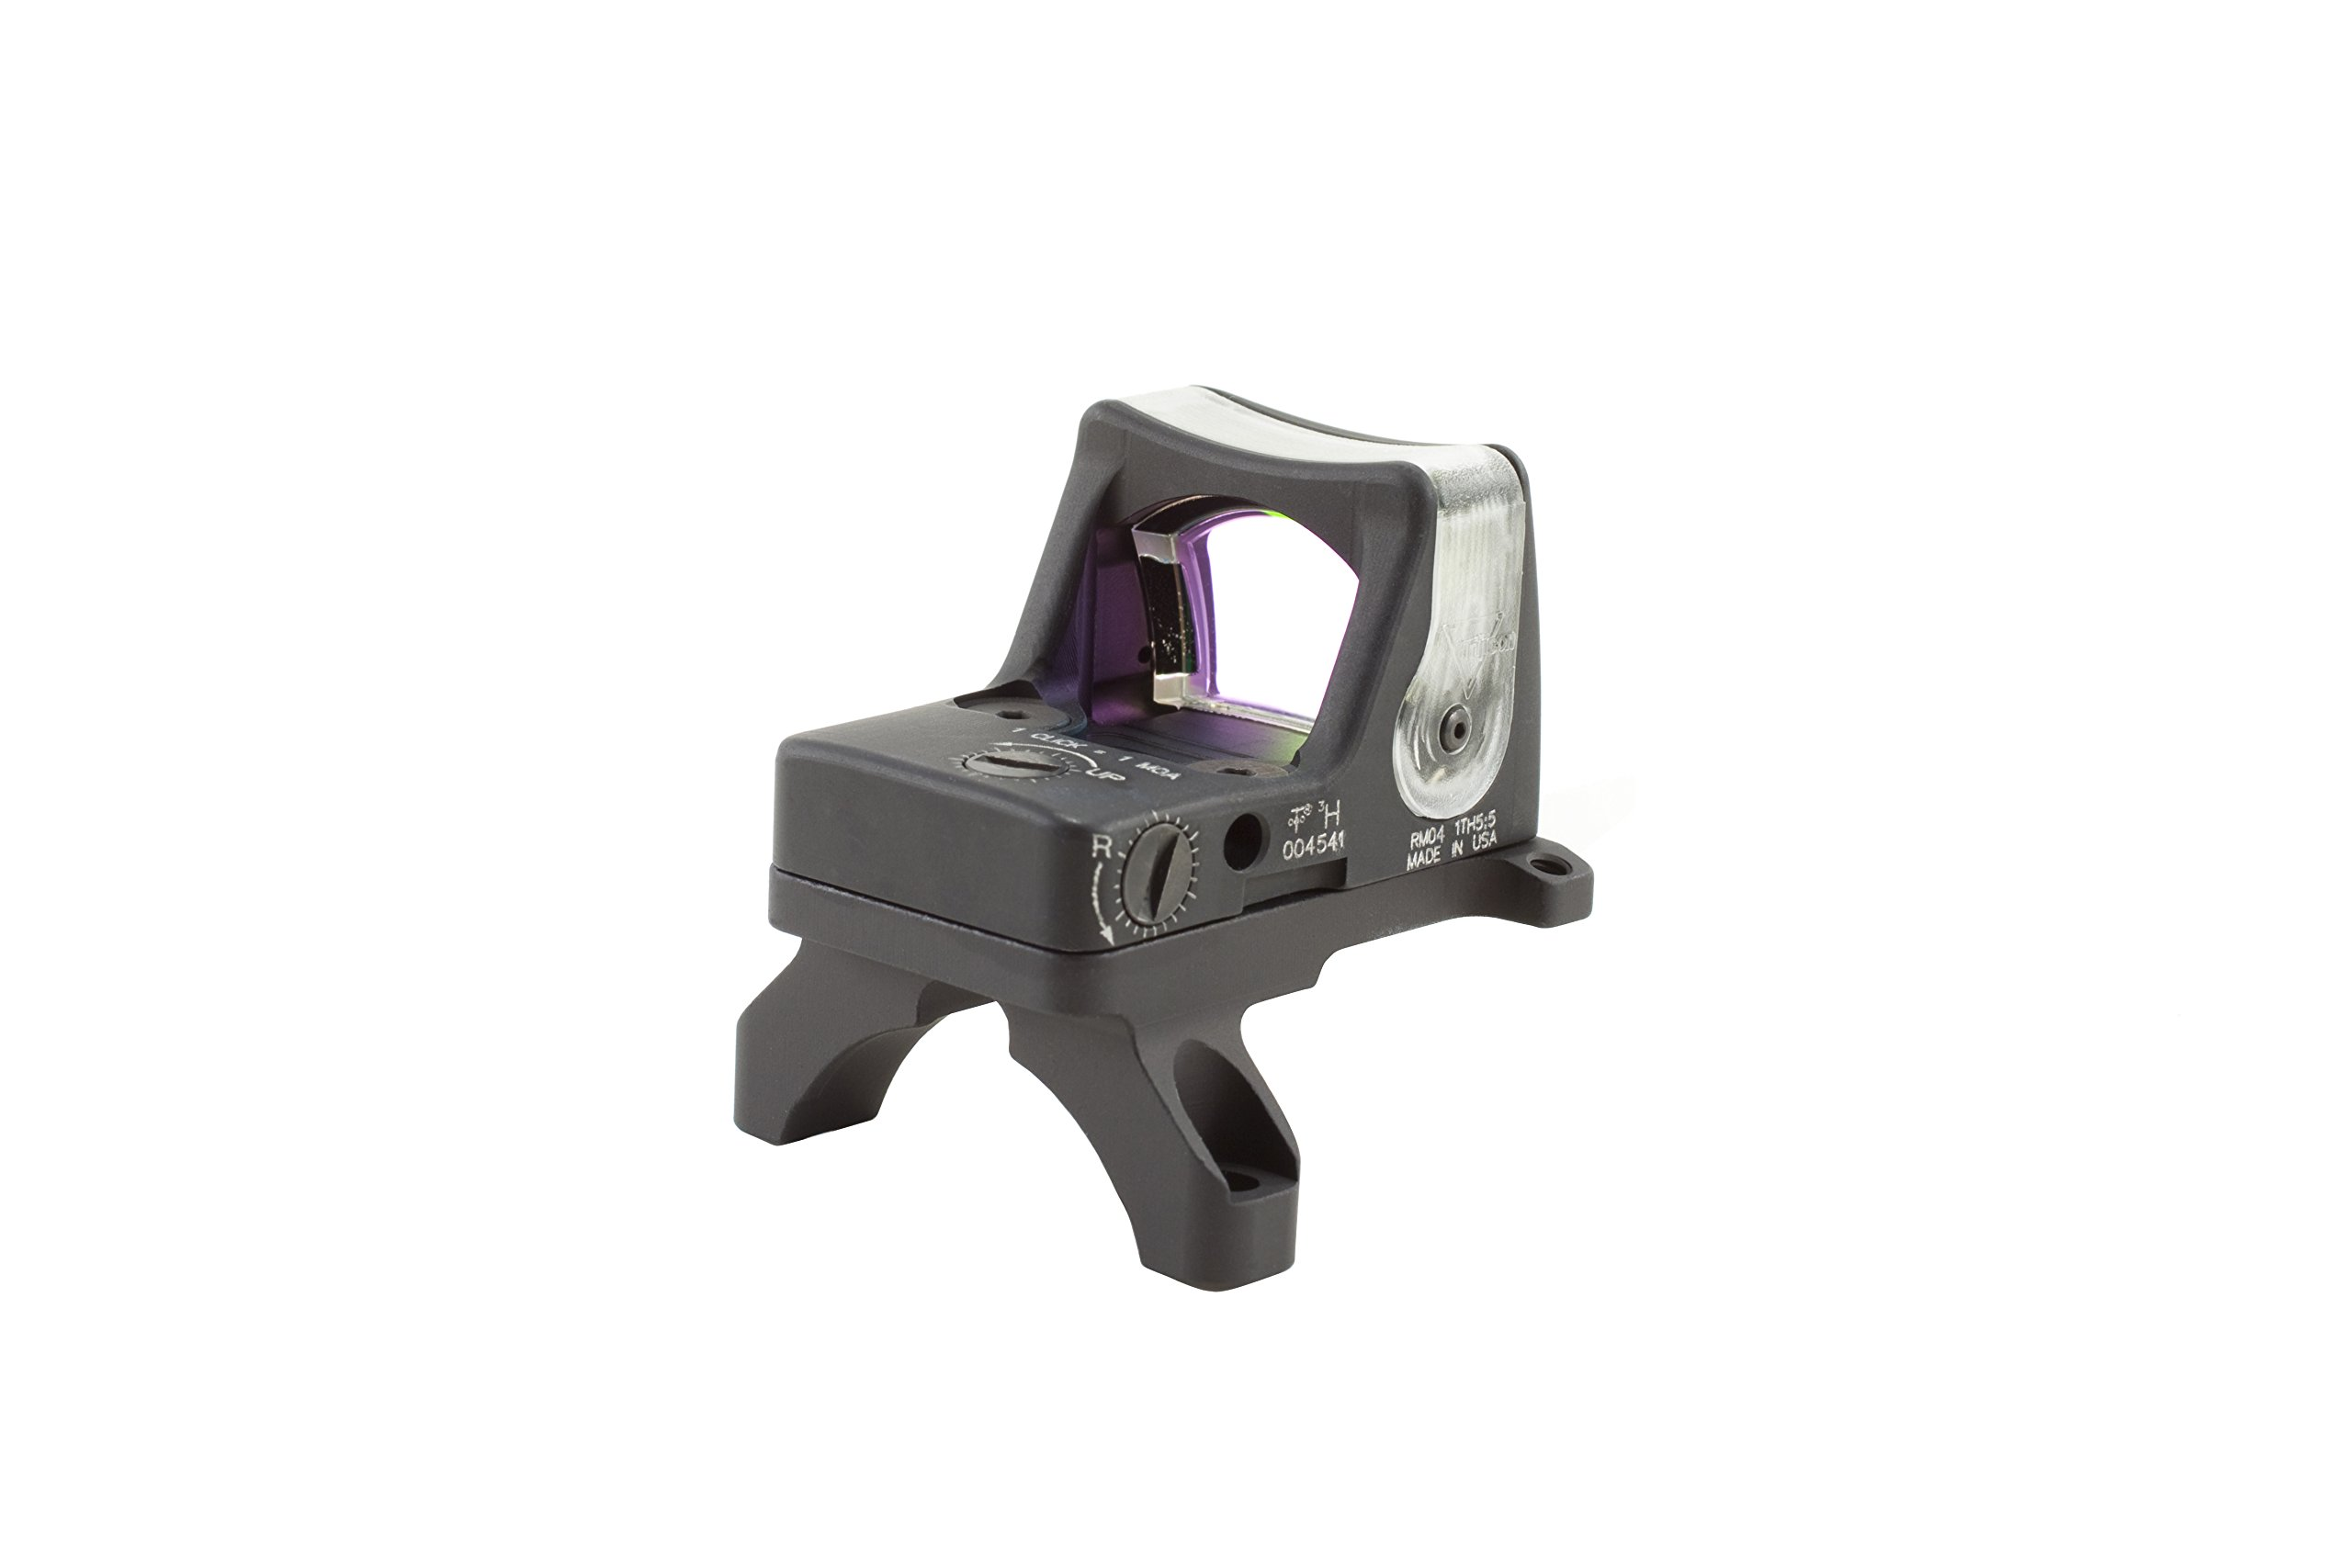 Trijicon RM04-35 RMR 7 MOA Dual-Illuminated Amber Dot Sight with RM35 Full Size ACOG Mount with Bosses by Trijicon (Image #2)